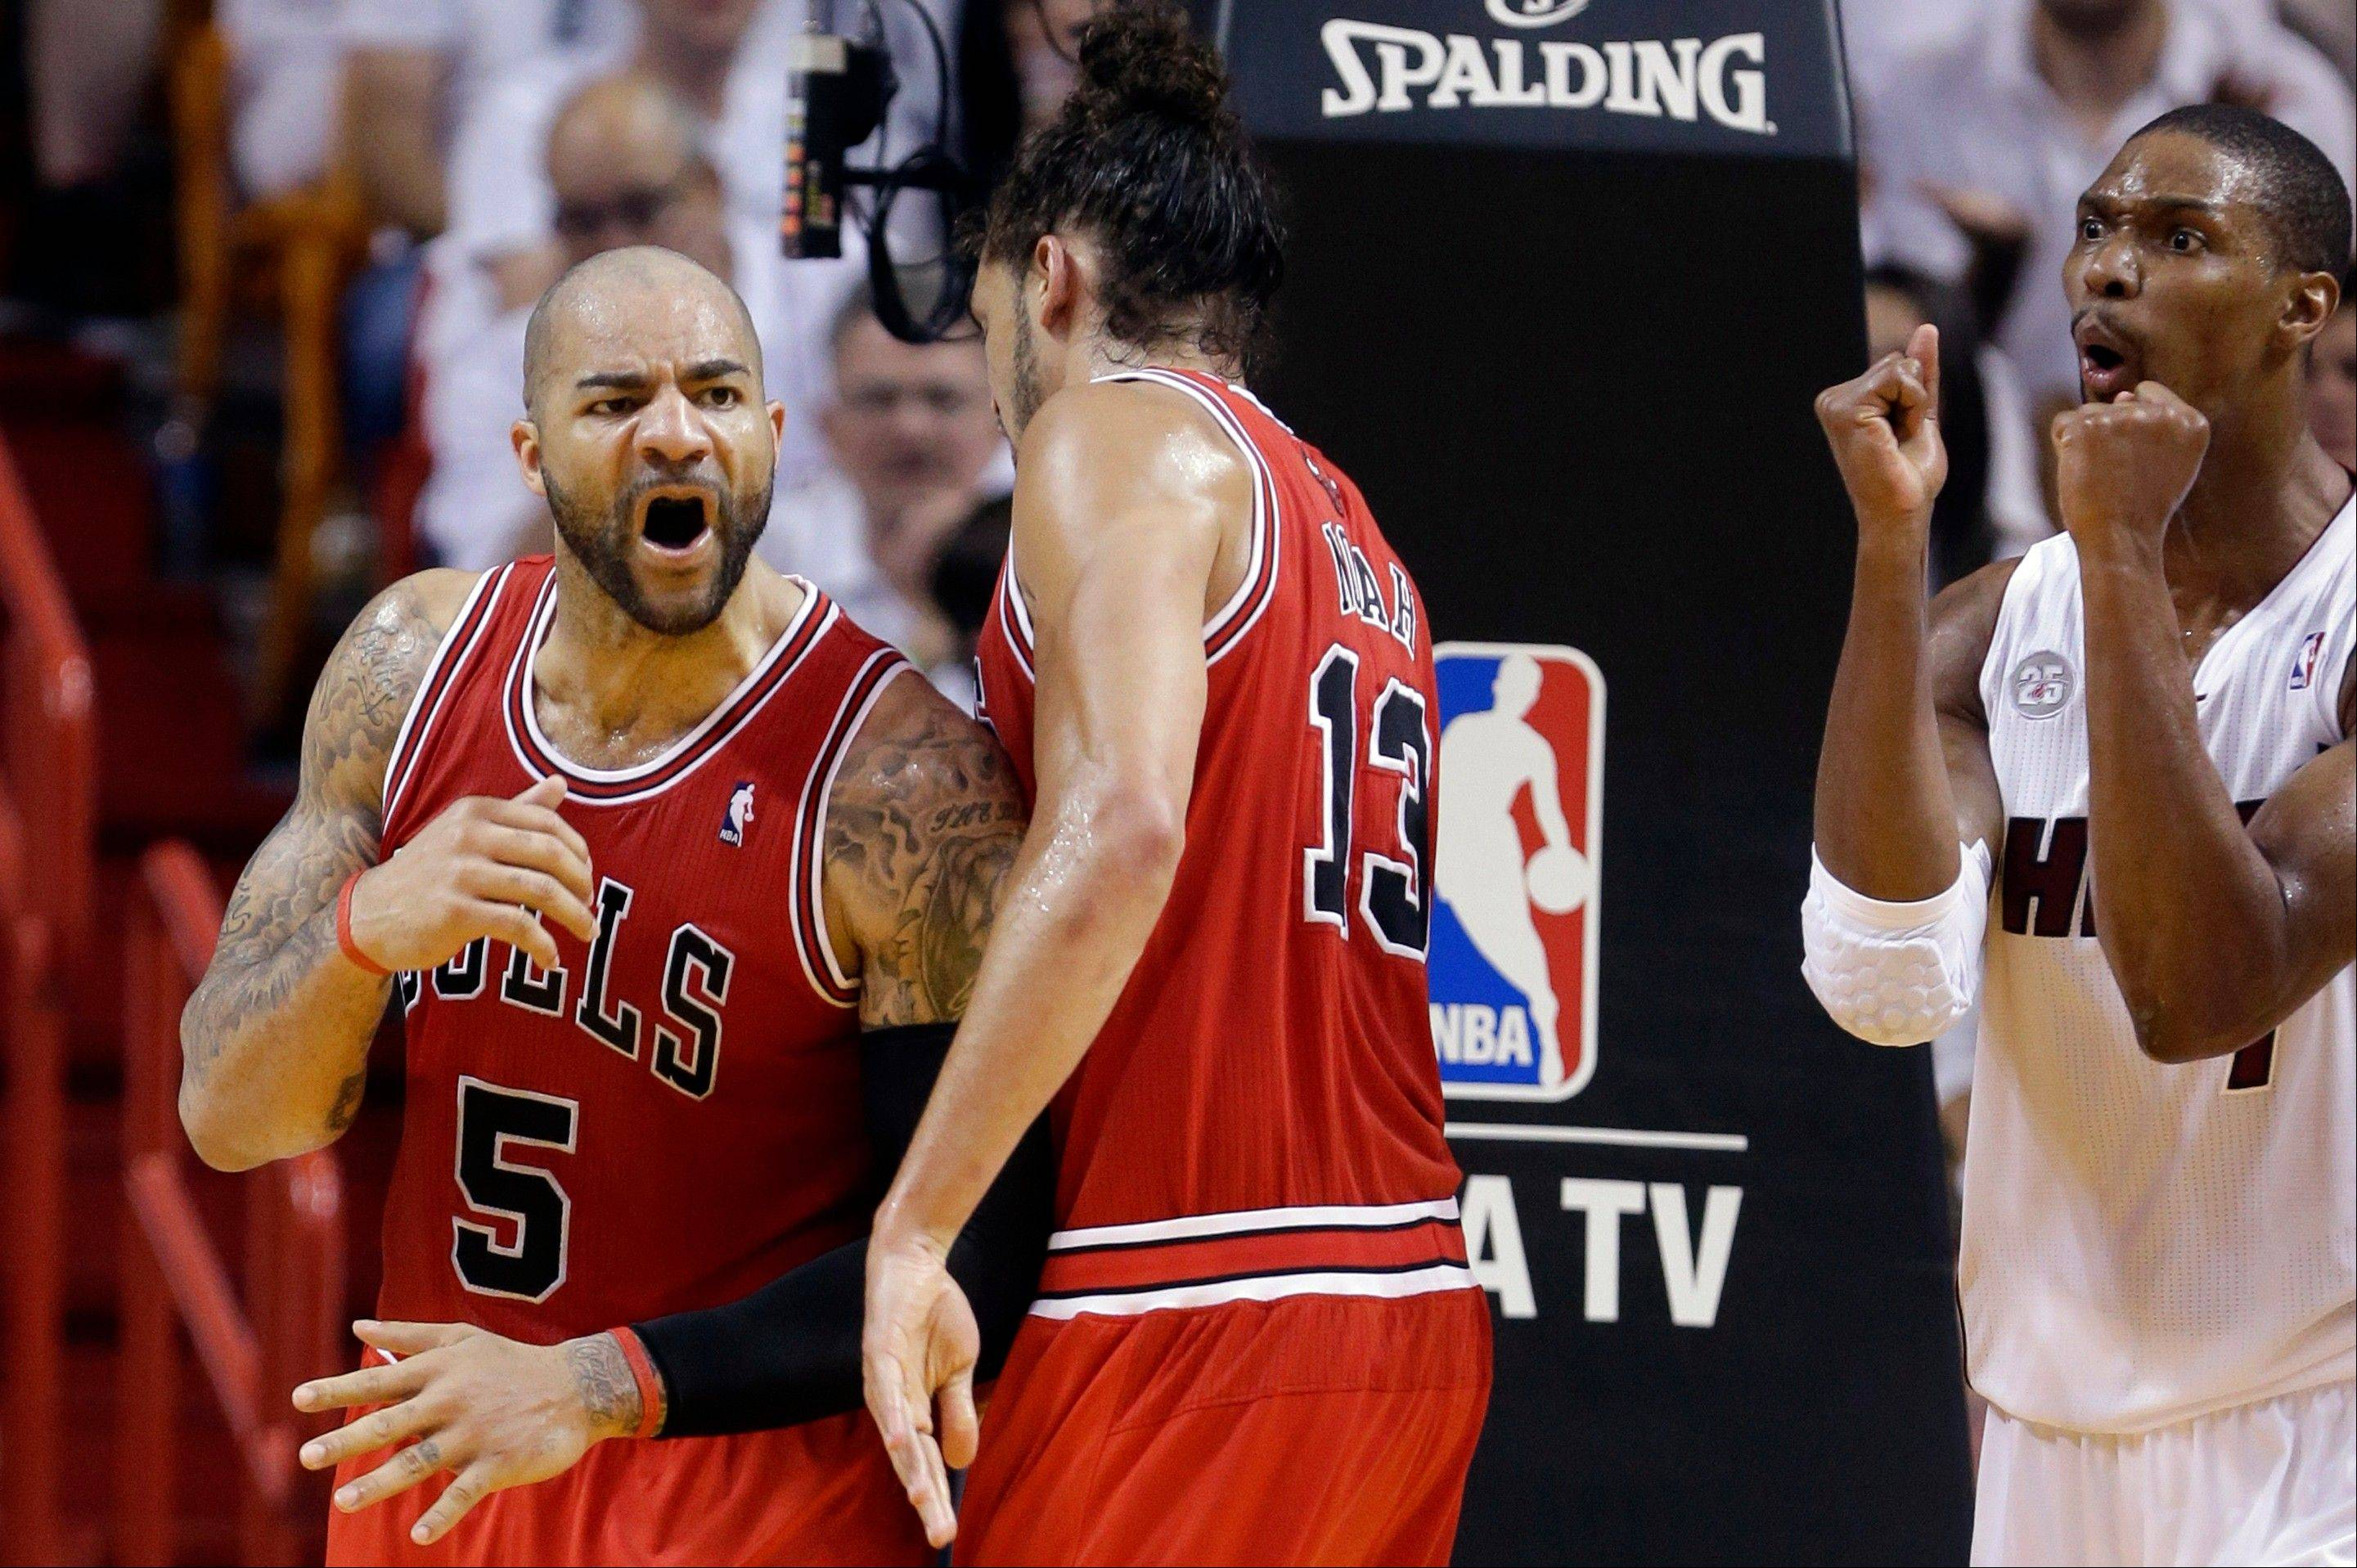 Chicago Bulls' Carlos Boozer (5) reacts after Miami Heat's Chris Bosh, right, was called for a foul during the first half of Game 5 of an NBA basketball Eastern Conference semifinal, Wednesday, May 15, 2013, in Miami. At center is Bulls' Joakim Noah.